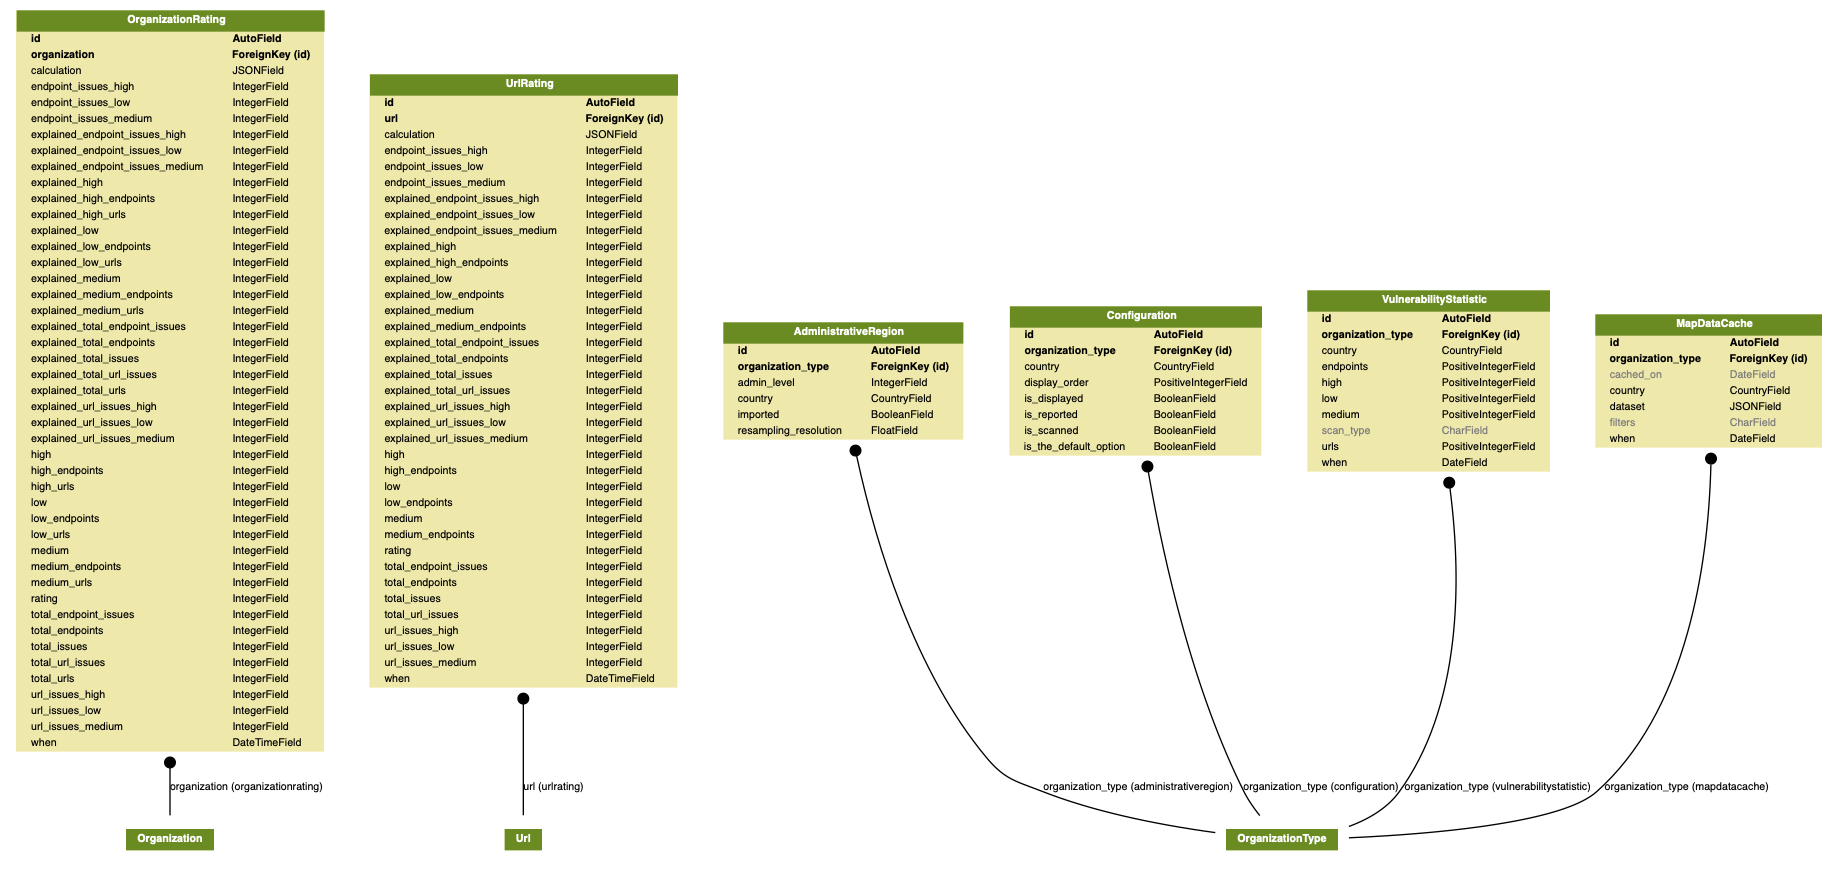 docs/source/topics/development/data_model/map_models.png